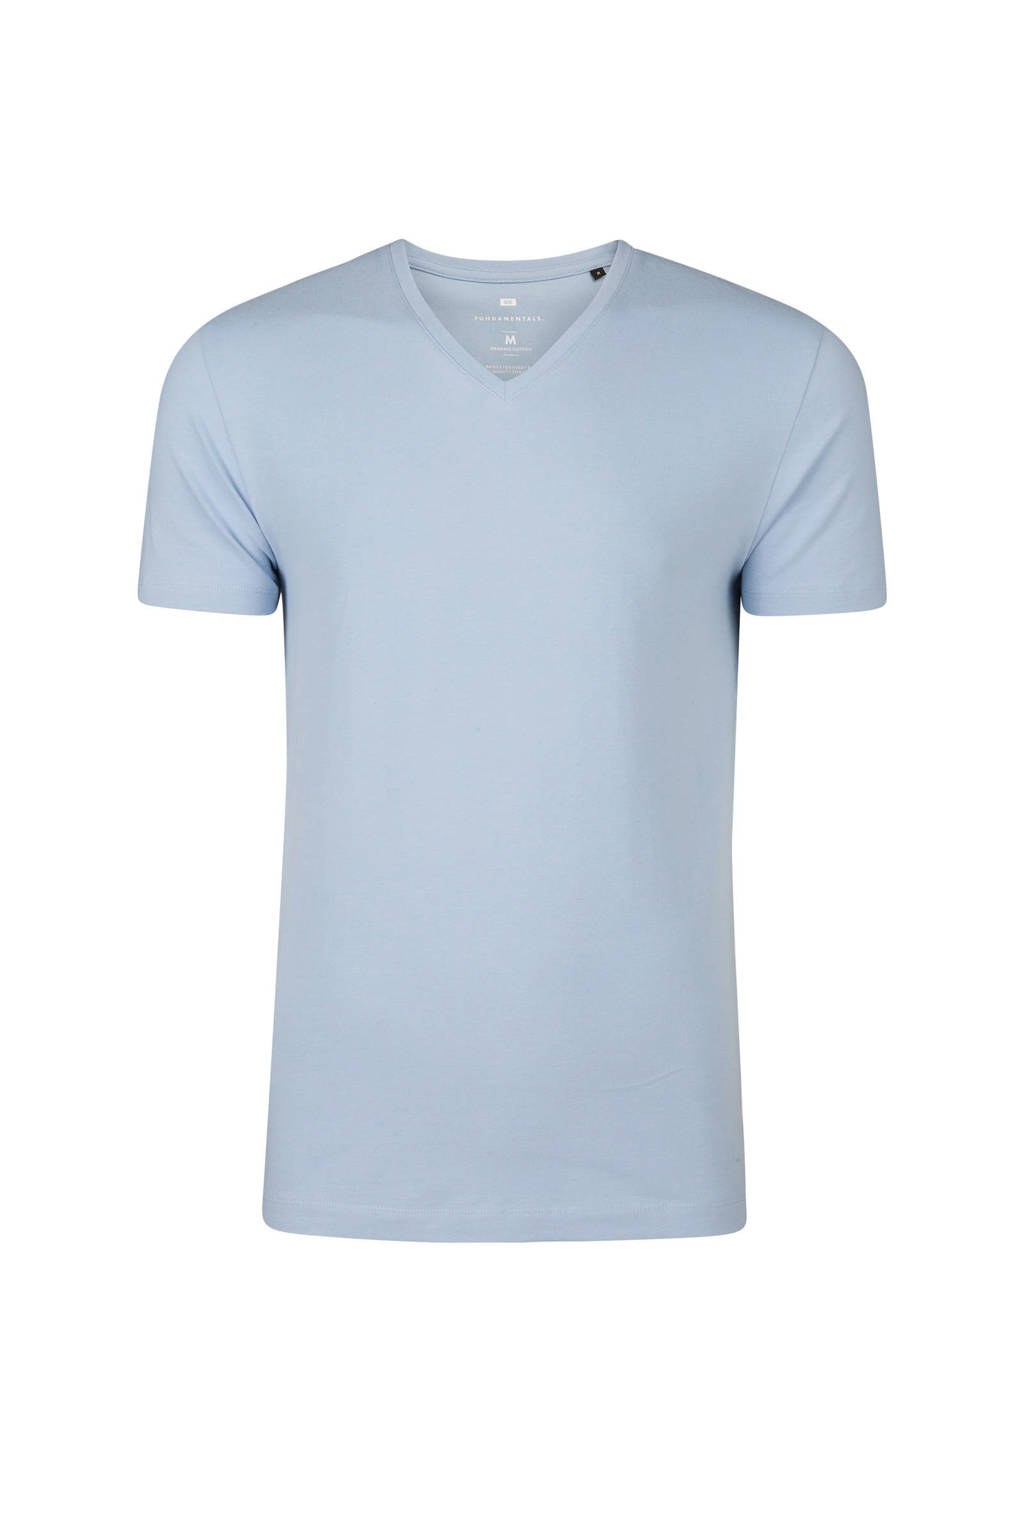 WE Fashion slim fit T-shirt, Blauw